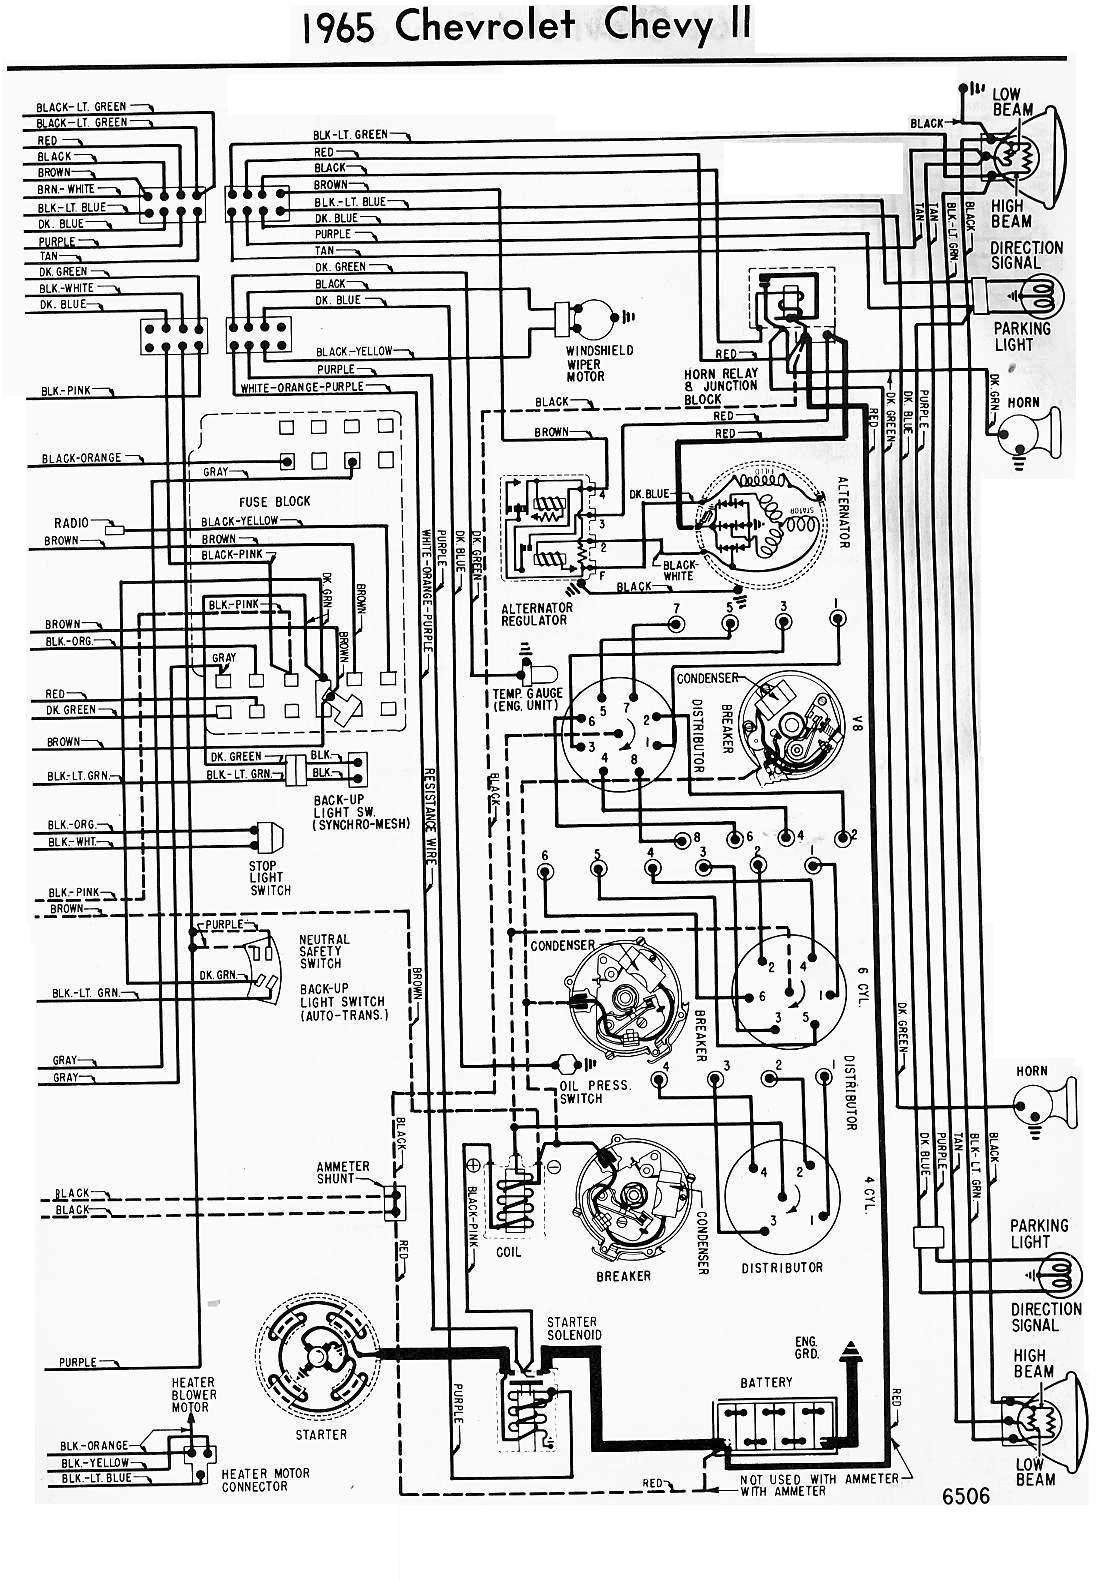 [DIAGRAM_4FR]  LN_4447] 1966 Chevrolet Impala Wiring Diagram On 1966 Nova Wiring Diagram  Free Diagram | 1966 C10 Regulator Wiring Diagram |  | Xero Eatte Mohammedshrine Librar Wiring 101